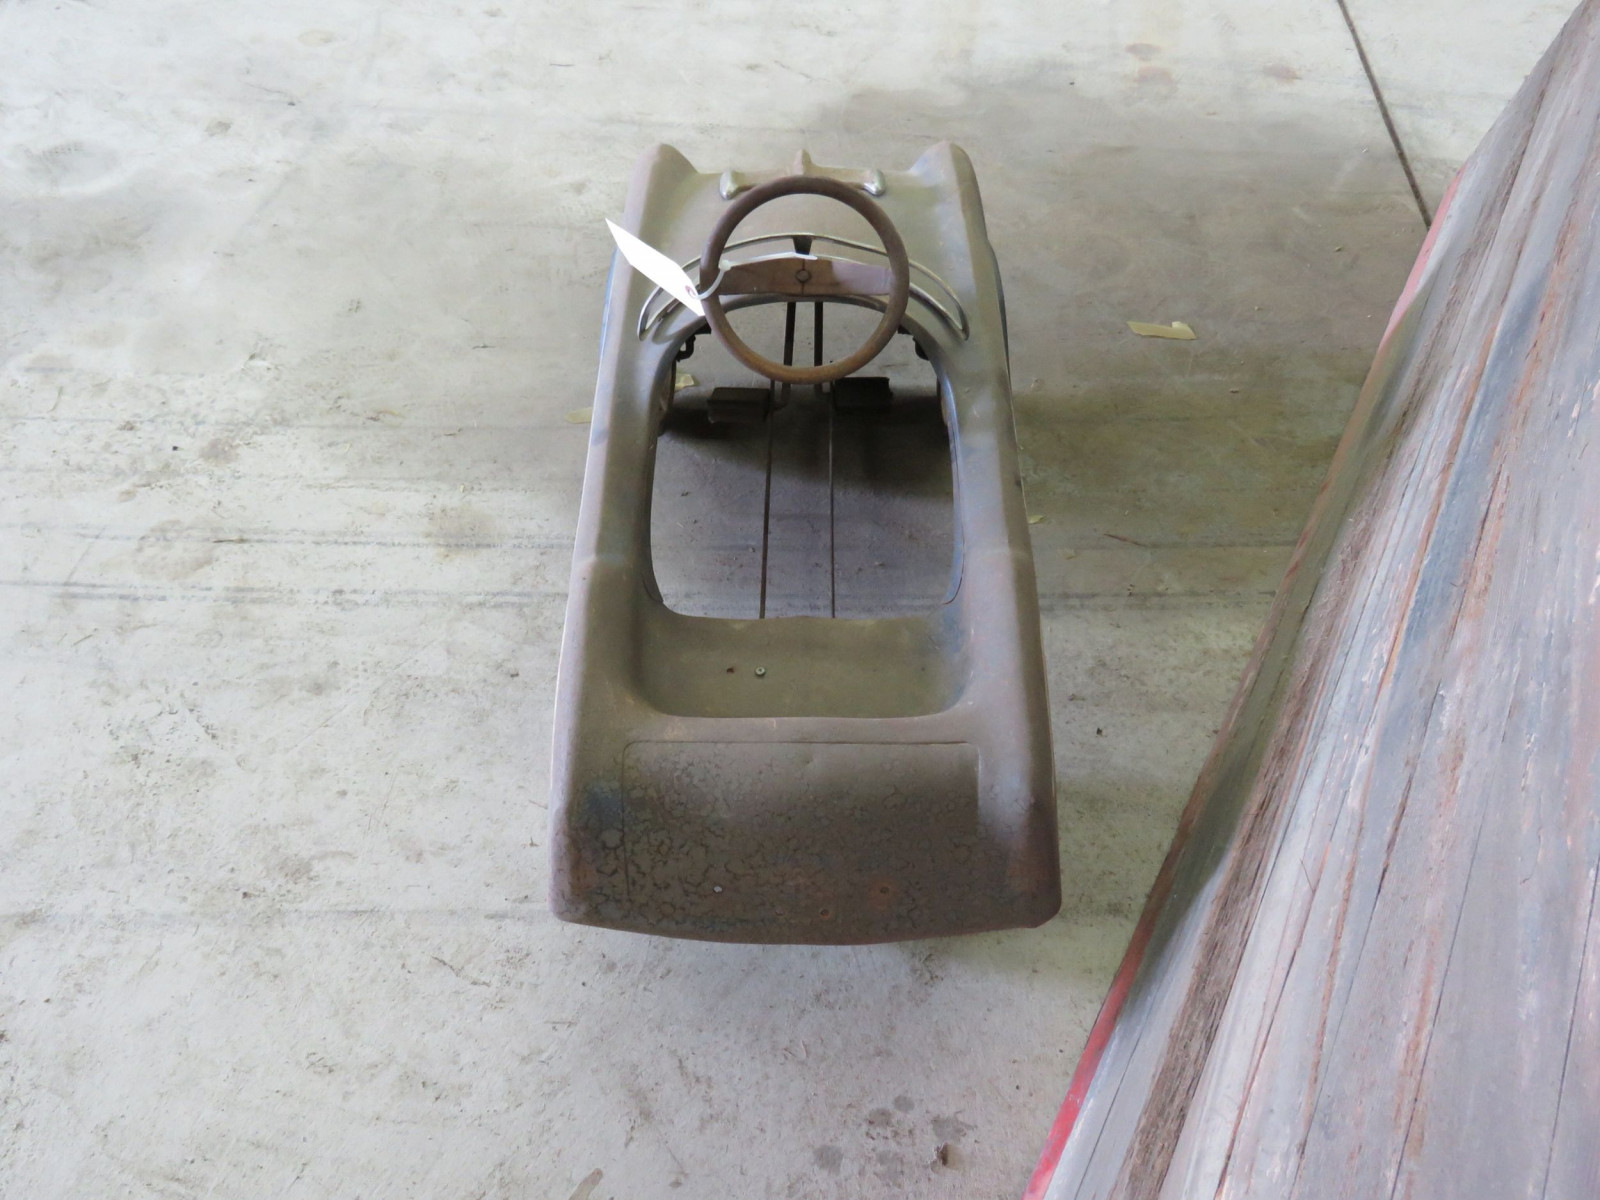 Midwest Industries Jet Hawk Pedal Car - Image 4